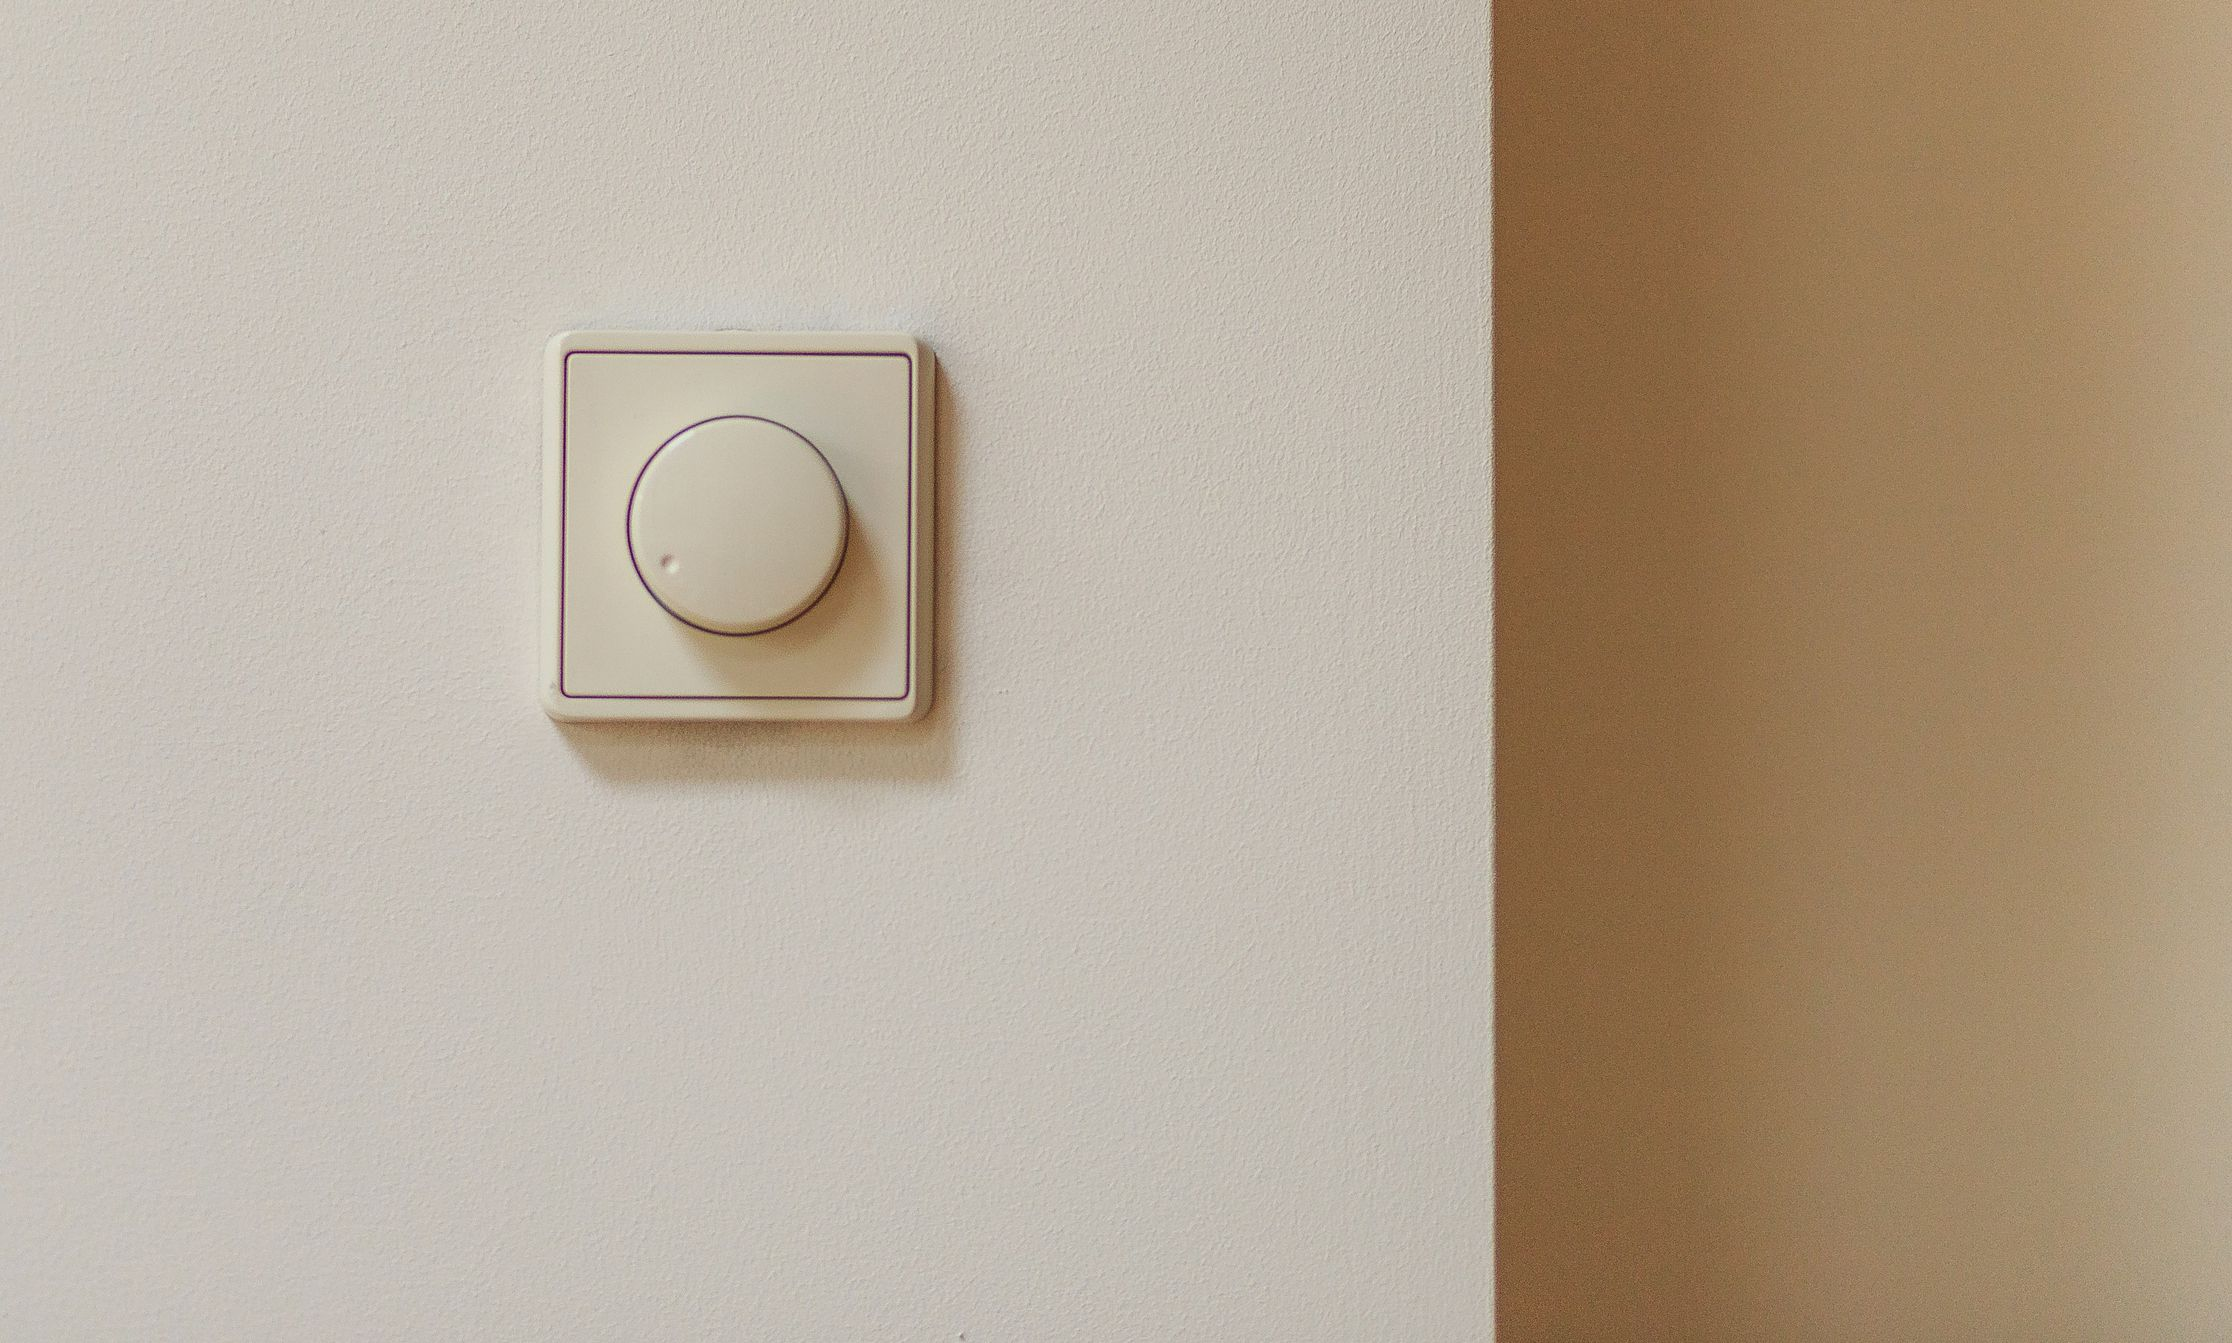 What Is A Rotary Dimmer Switch